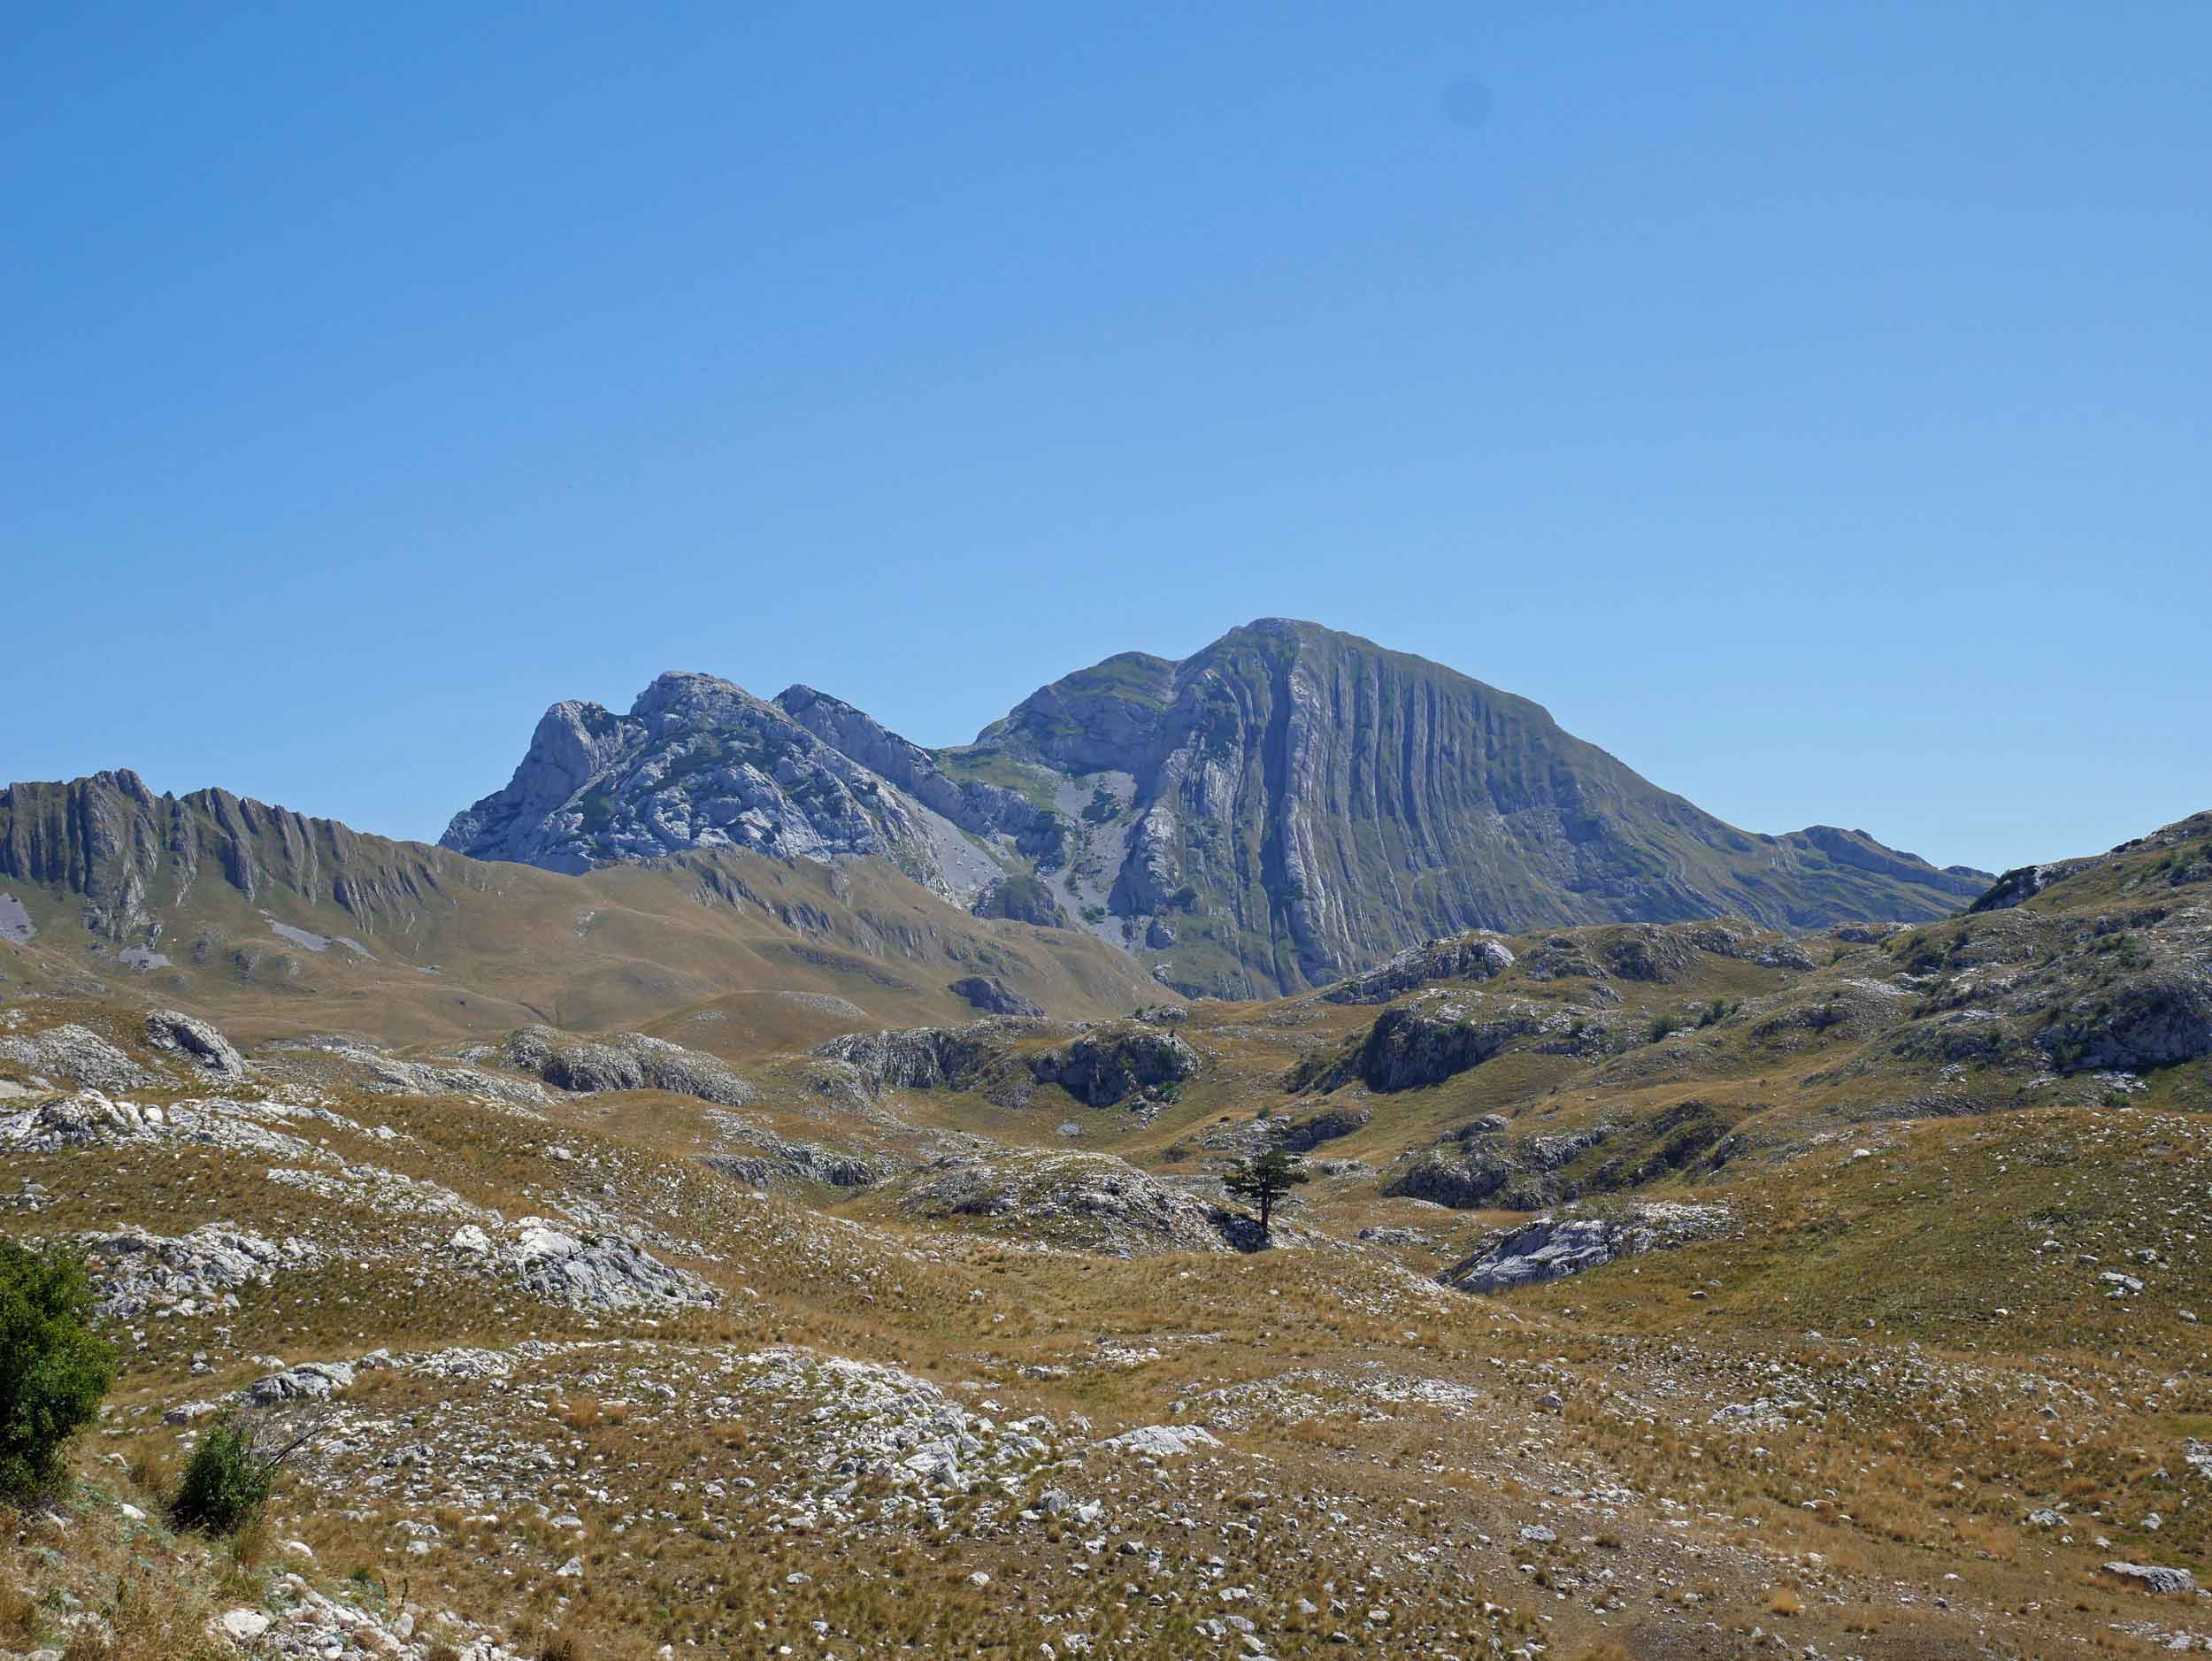 The awesome landscape of Durmitor massif boasts more than 40 peaks above 2,000 metres (6,500ft).